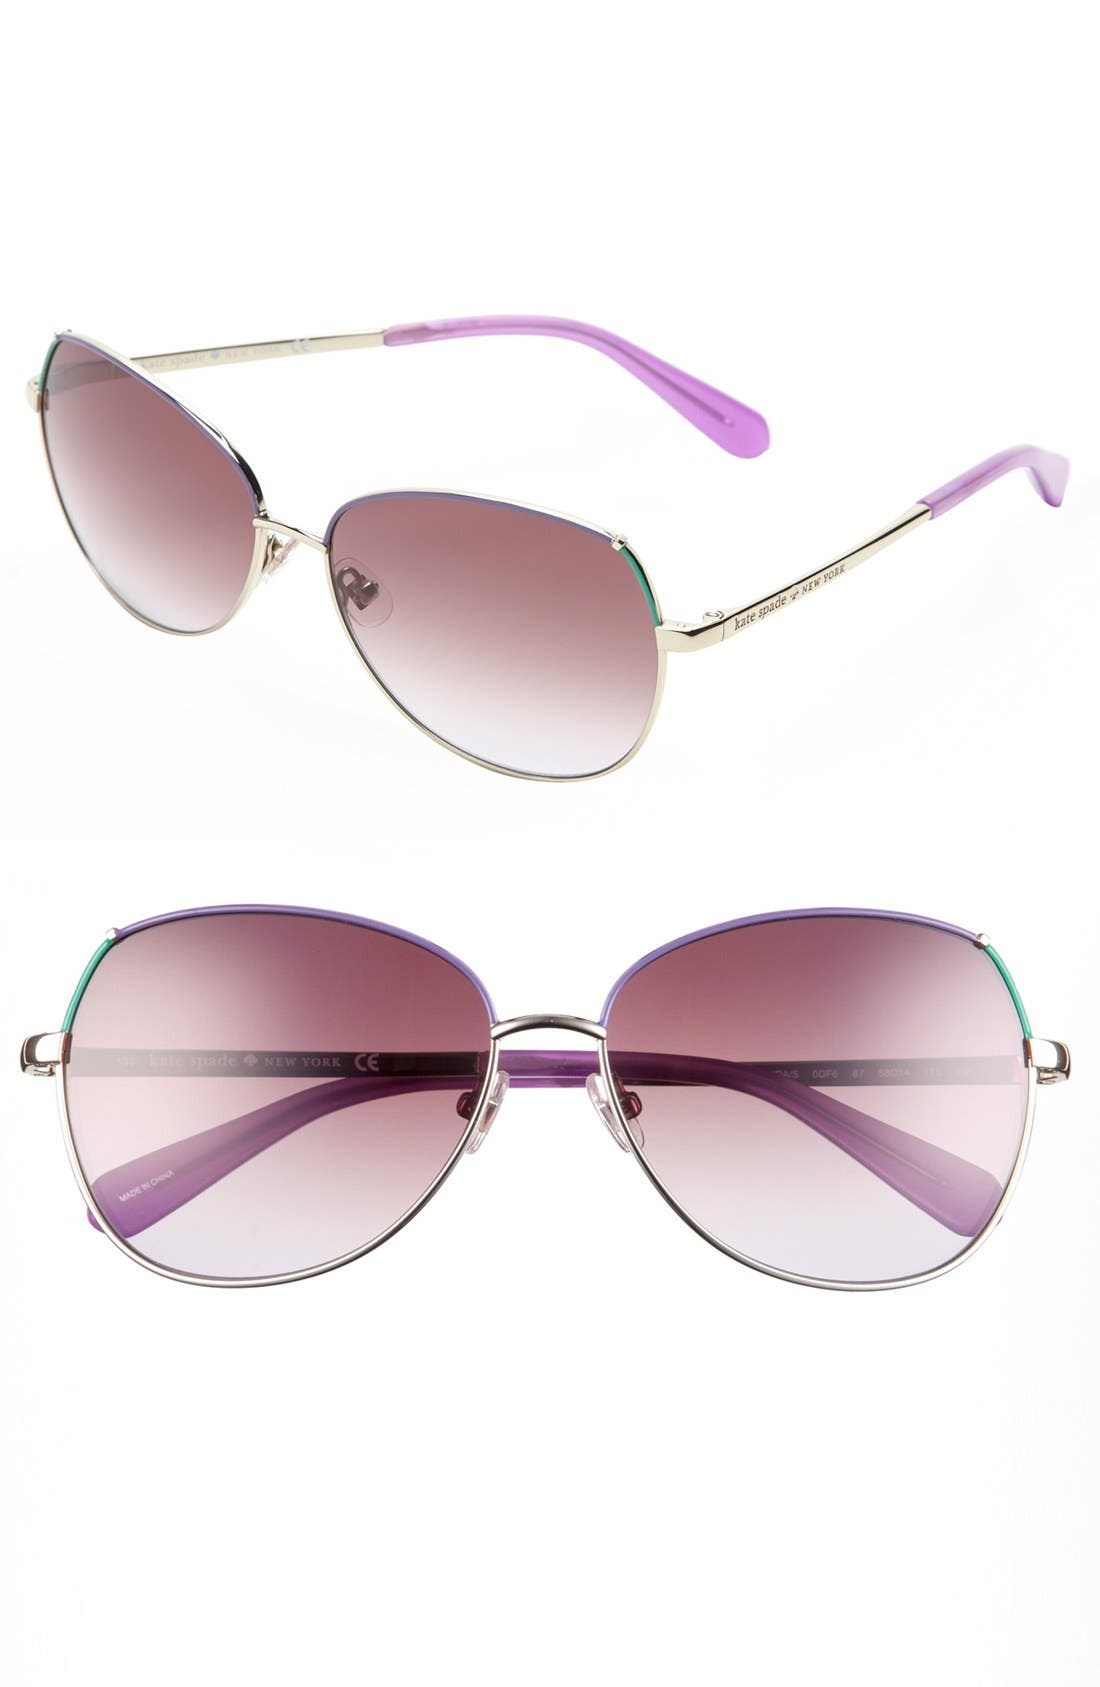 Main Image - kate spade new york 'candis' 58mm sunglasses